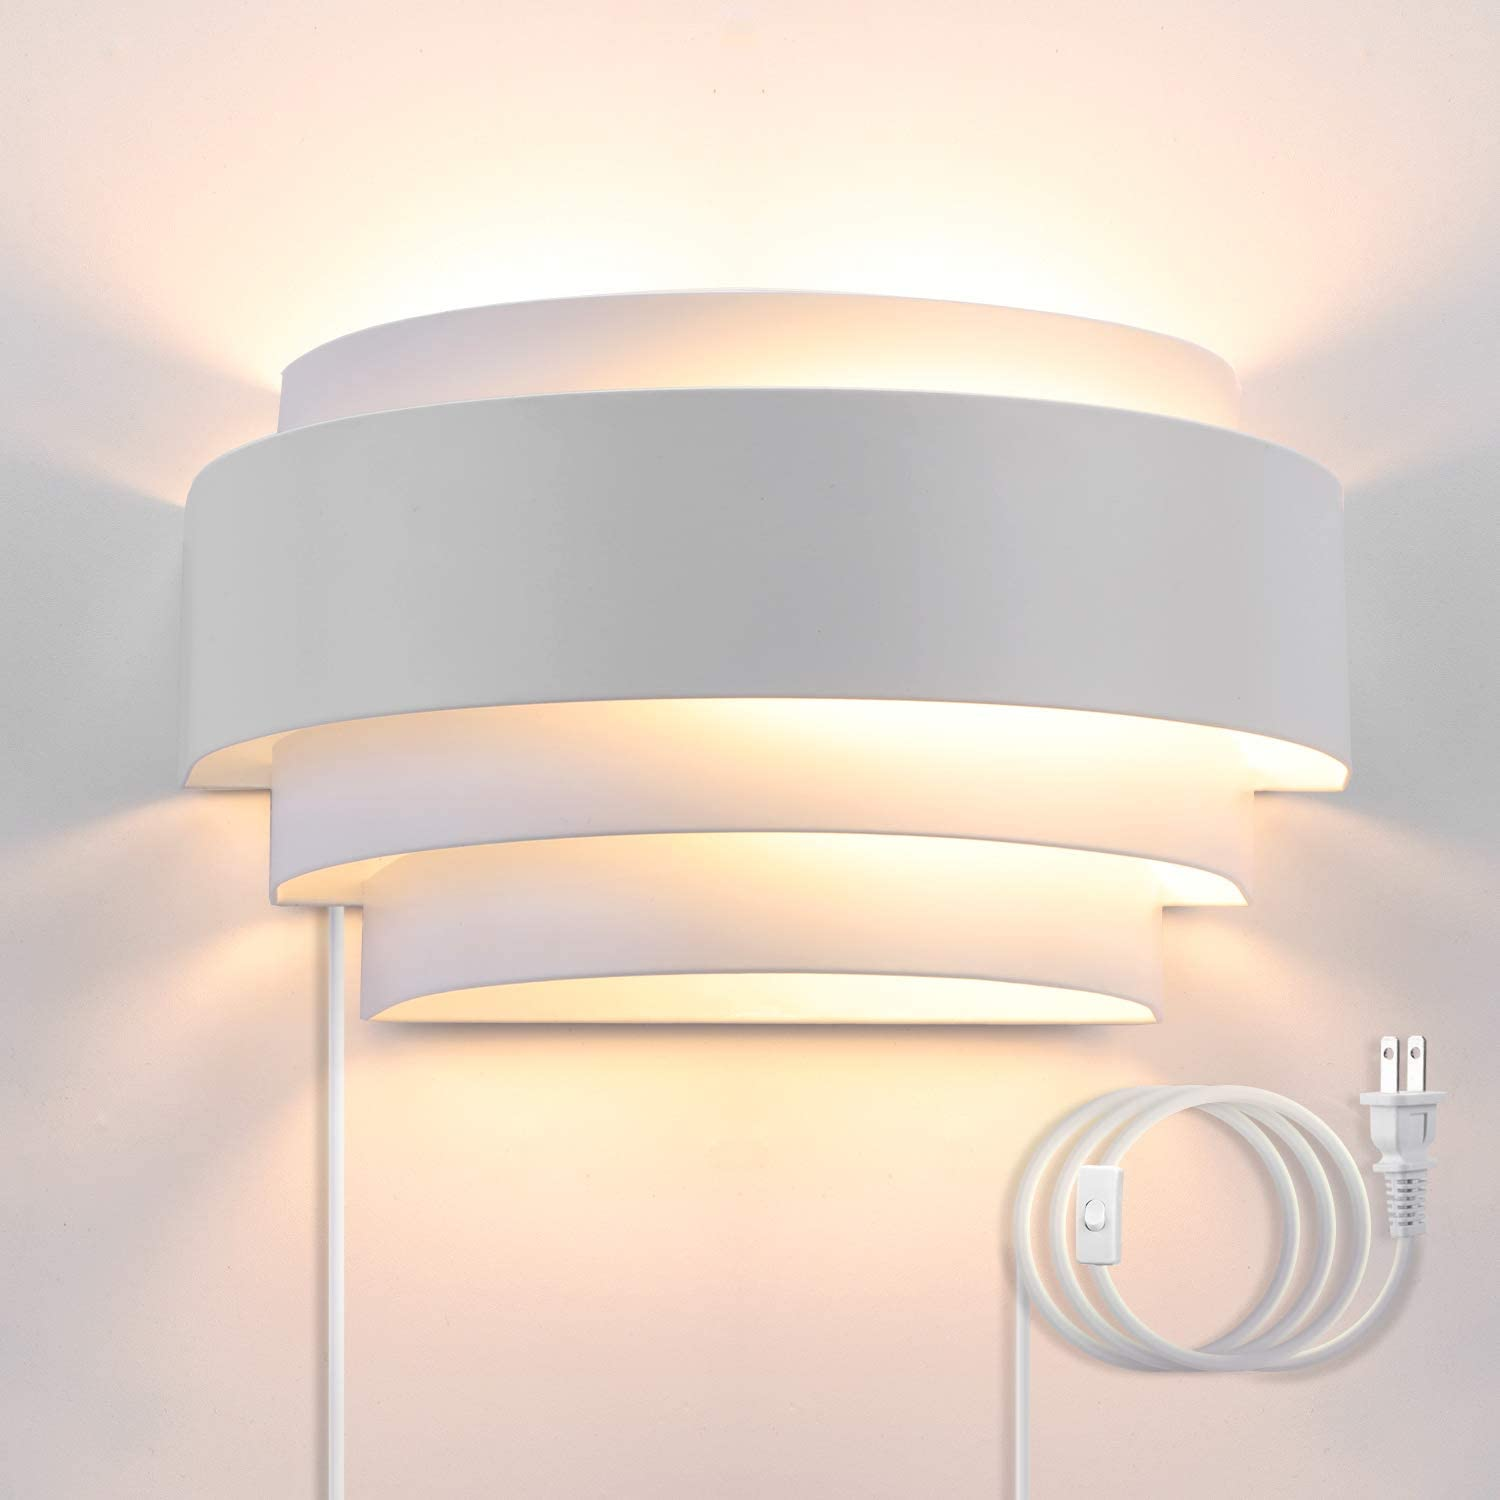 Bjour Modern Wall Sconces Plug in Up Down Wall Sconce White Bedroom Wall Lamp Metal Shade Wall Mounted Lamps with 6FT Plug in Cord for Bedroom Living Room Hallway, Warm White, 7W